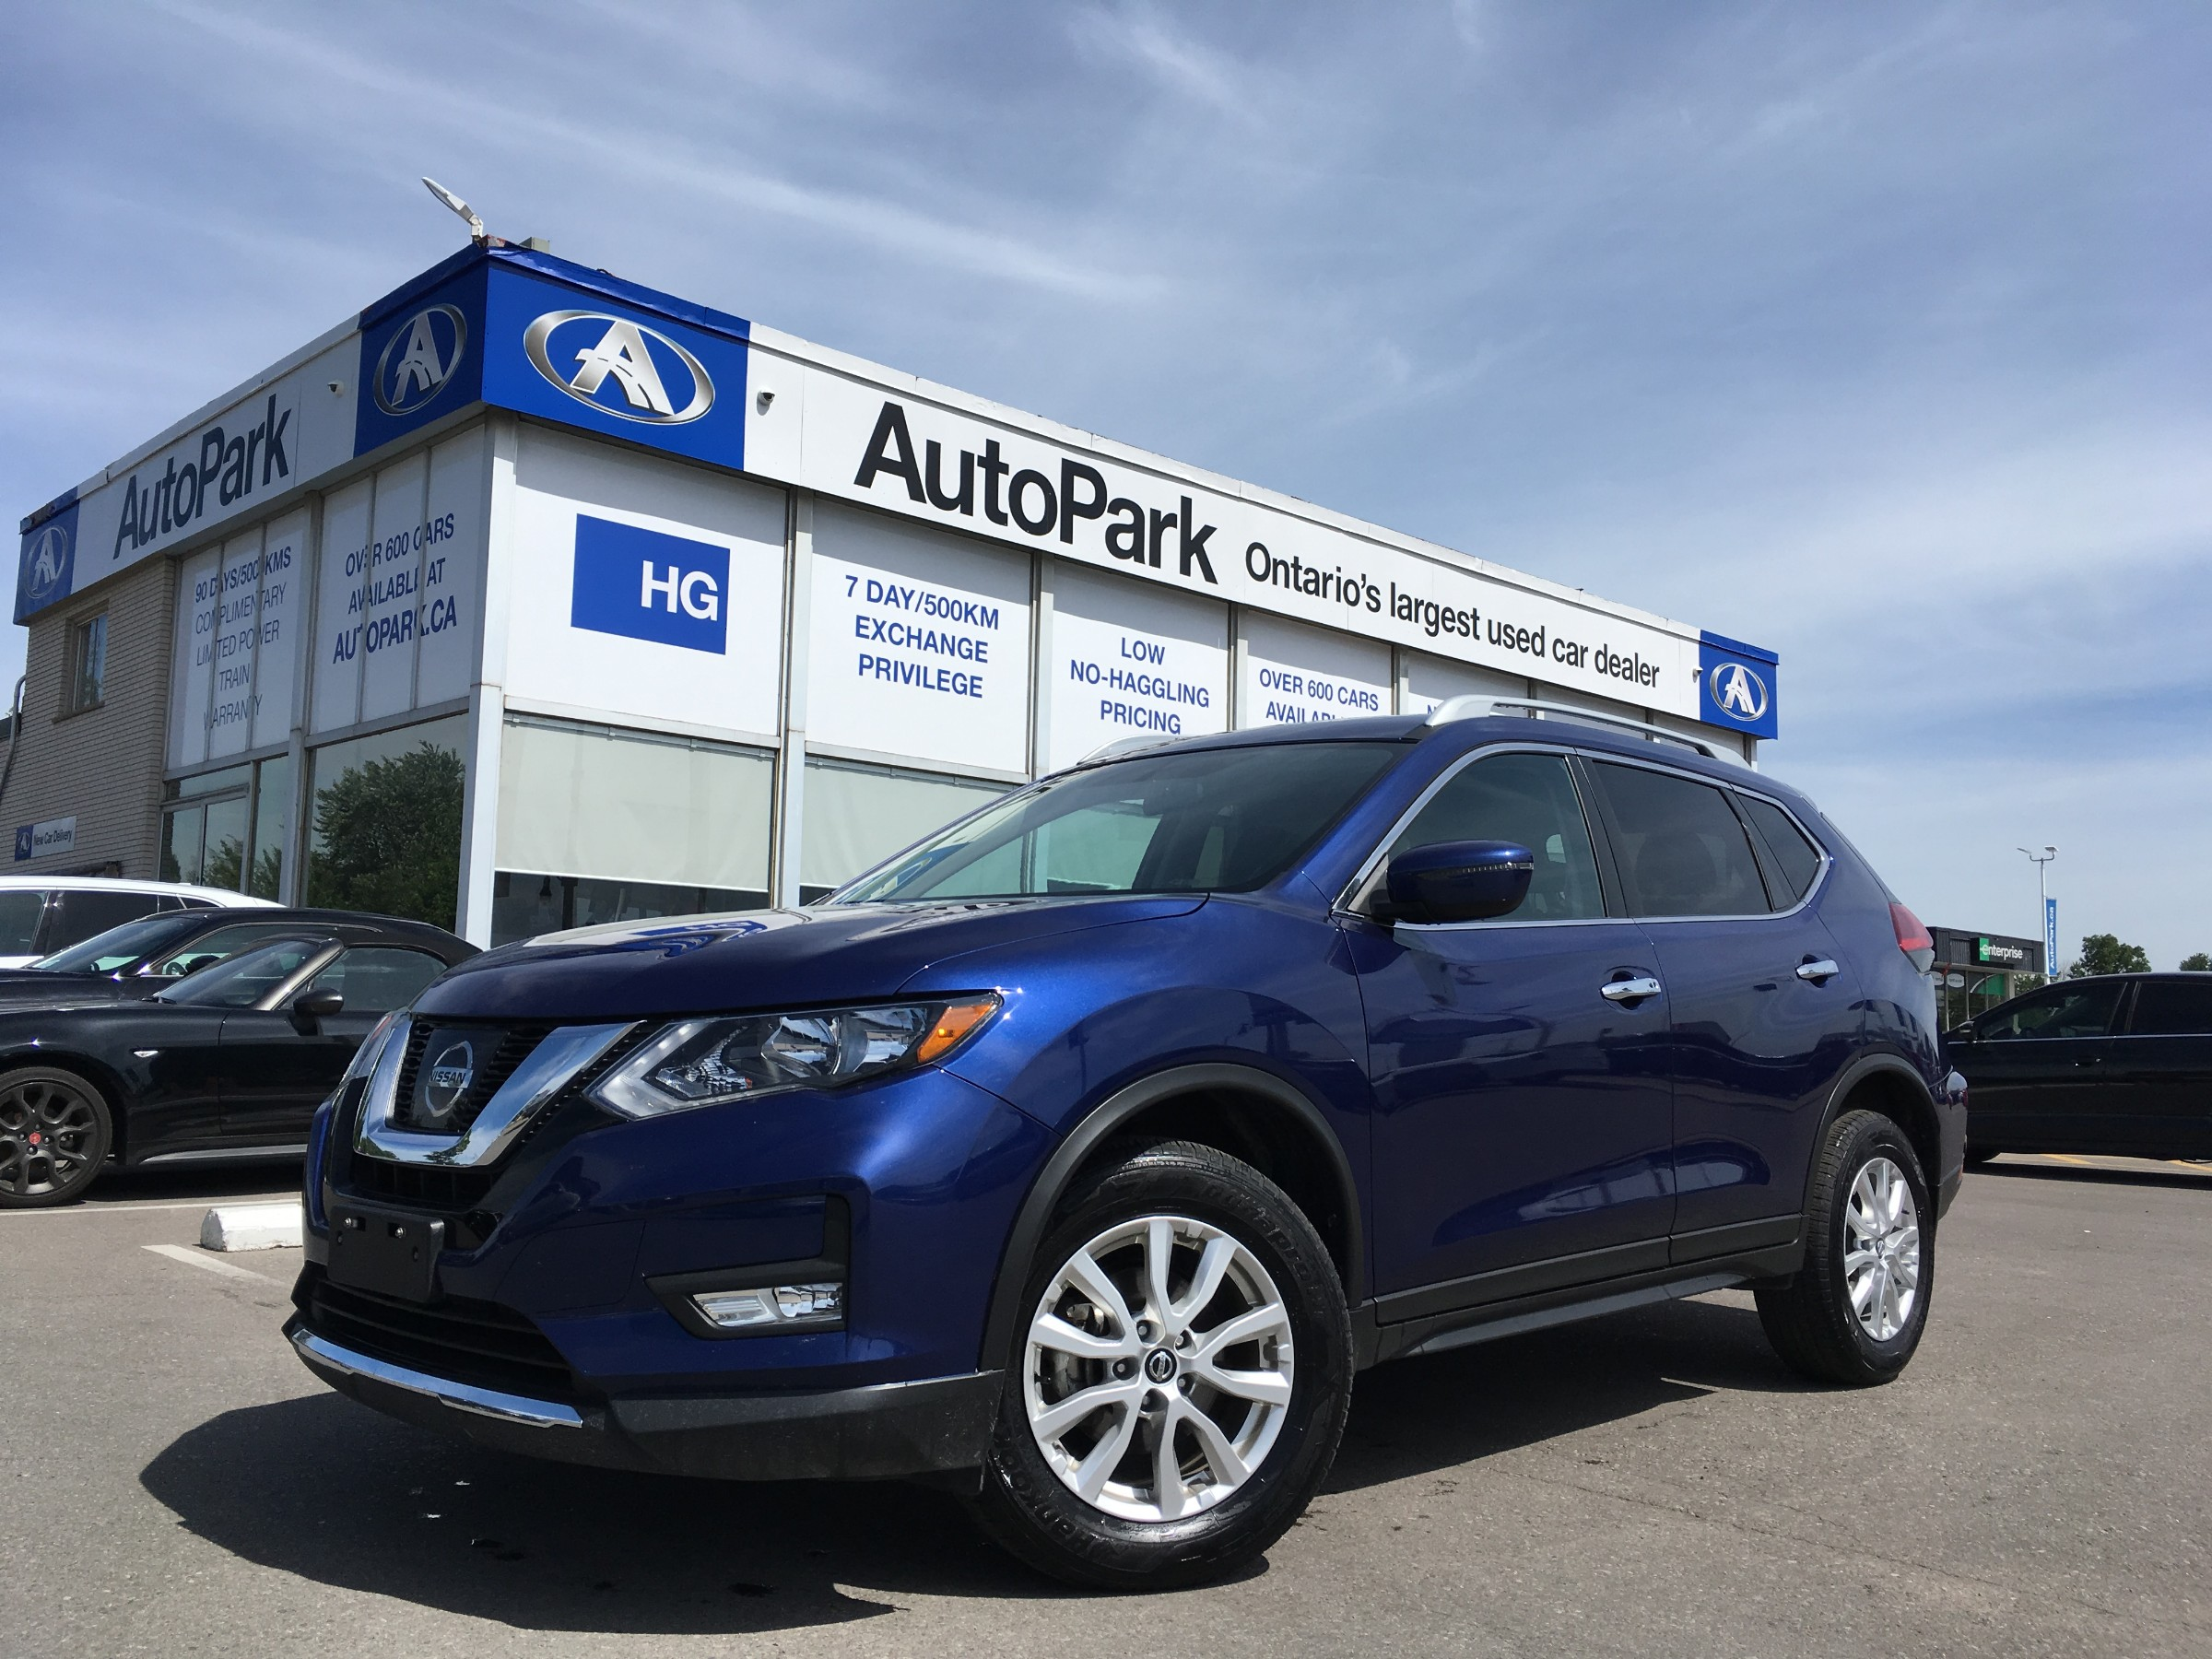 2018 Nissan Rogue For Sale in Toronto, ON - CarGurus